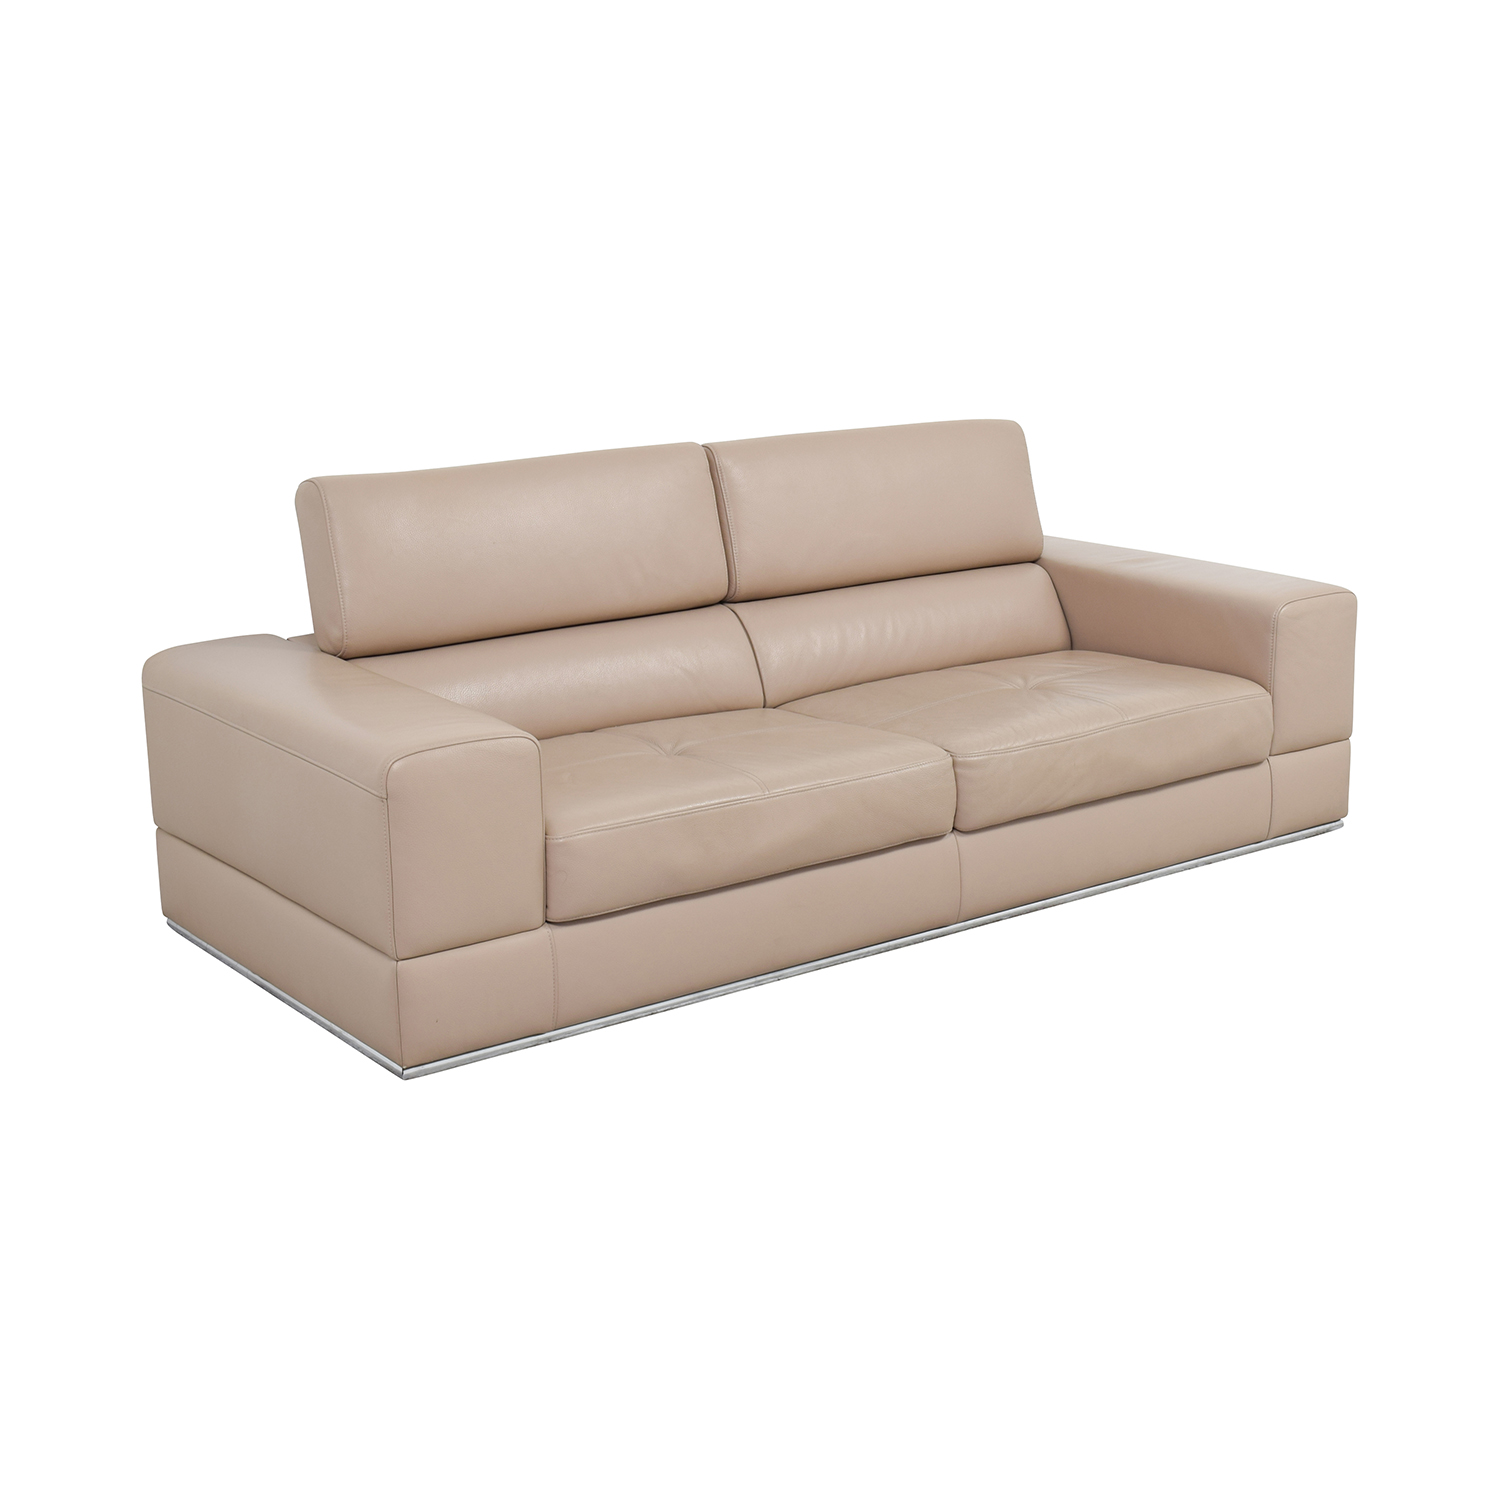 82 Off Lazzoni Lazzoni Beige Leather Sofa Sofas